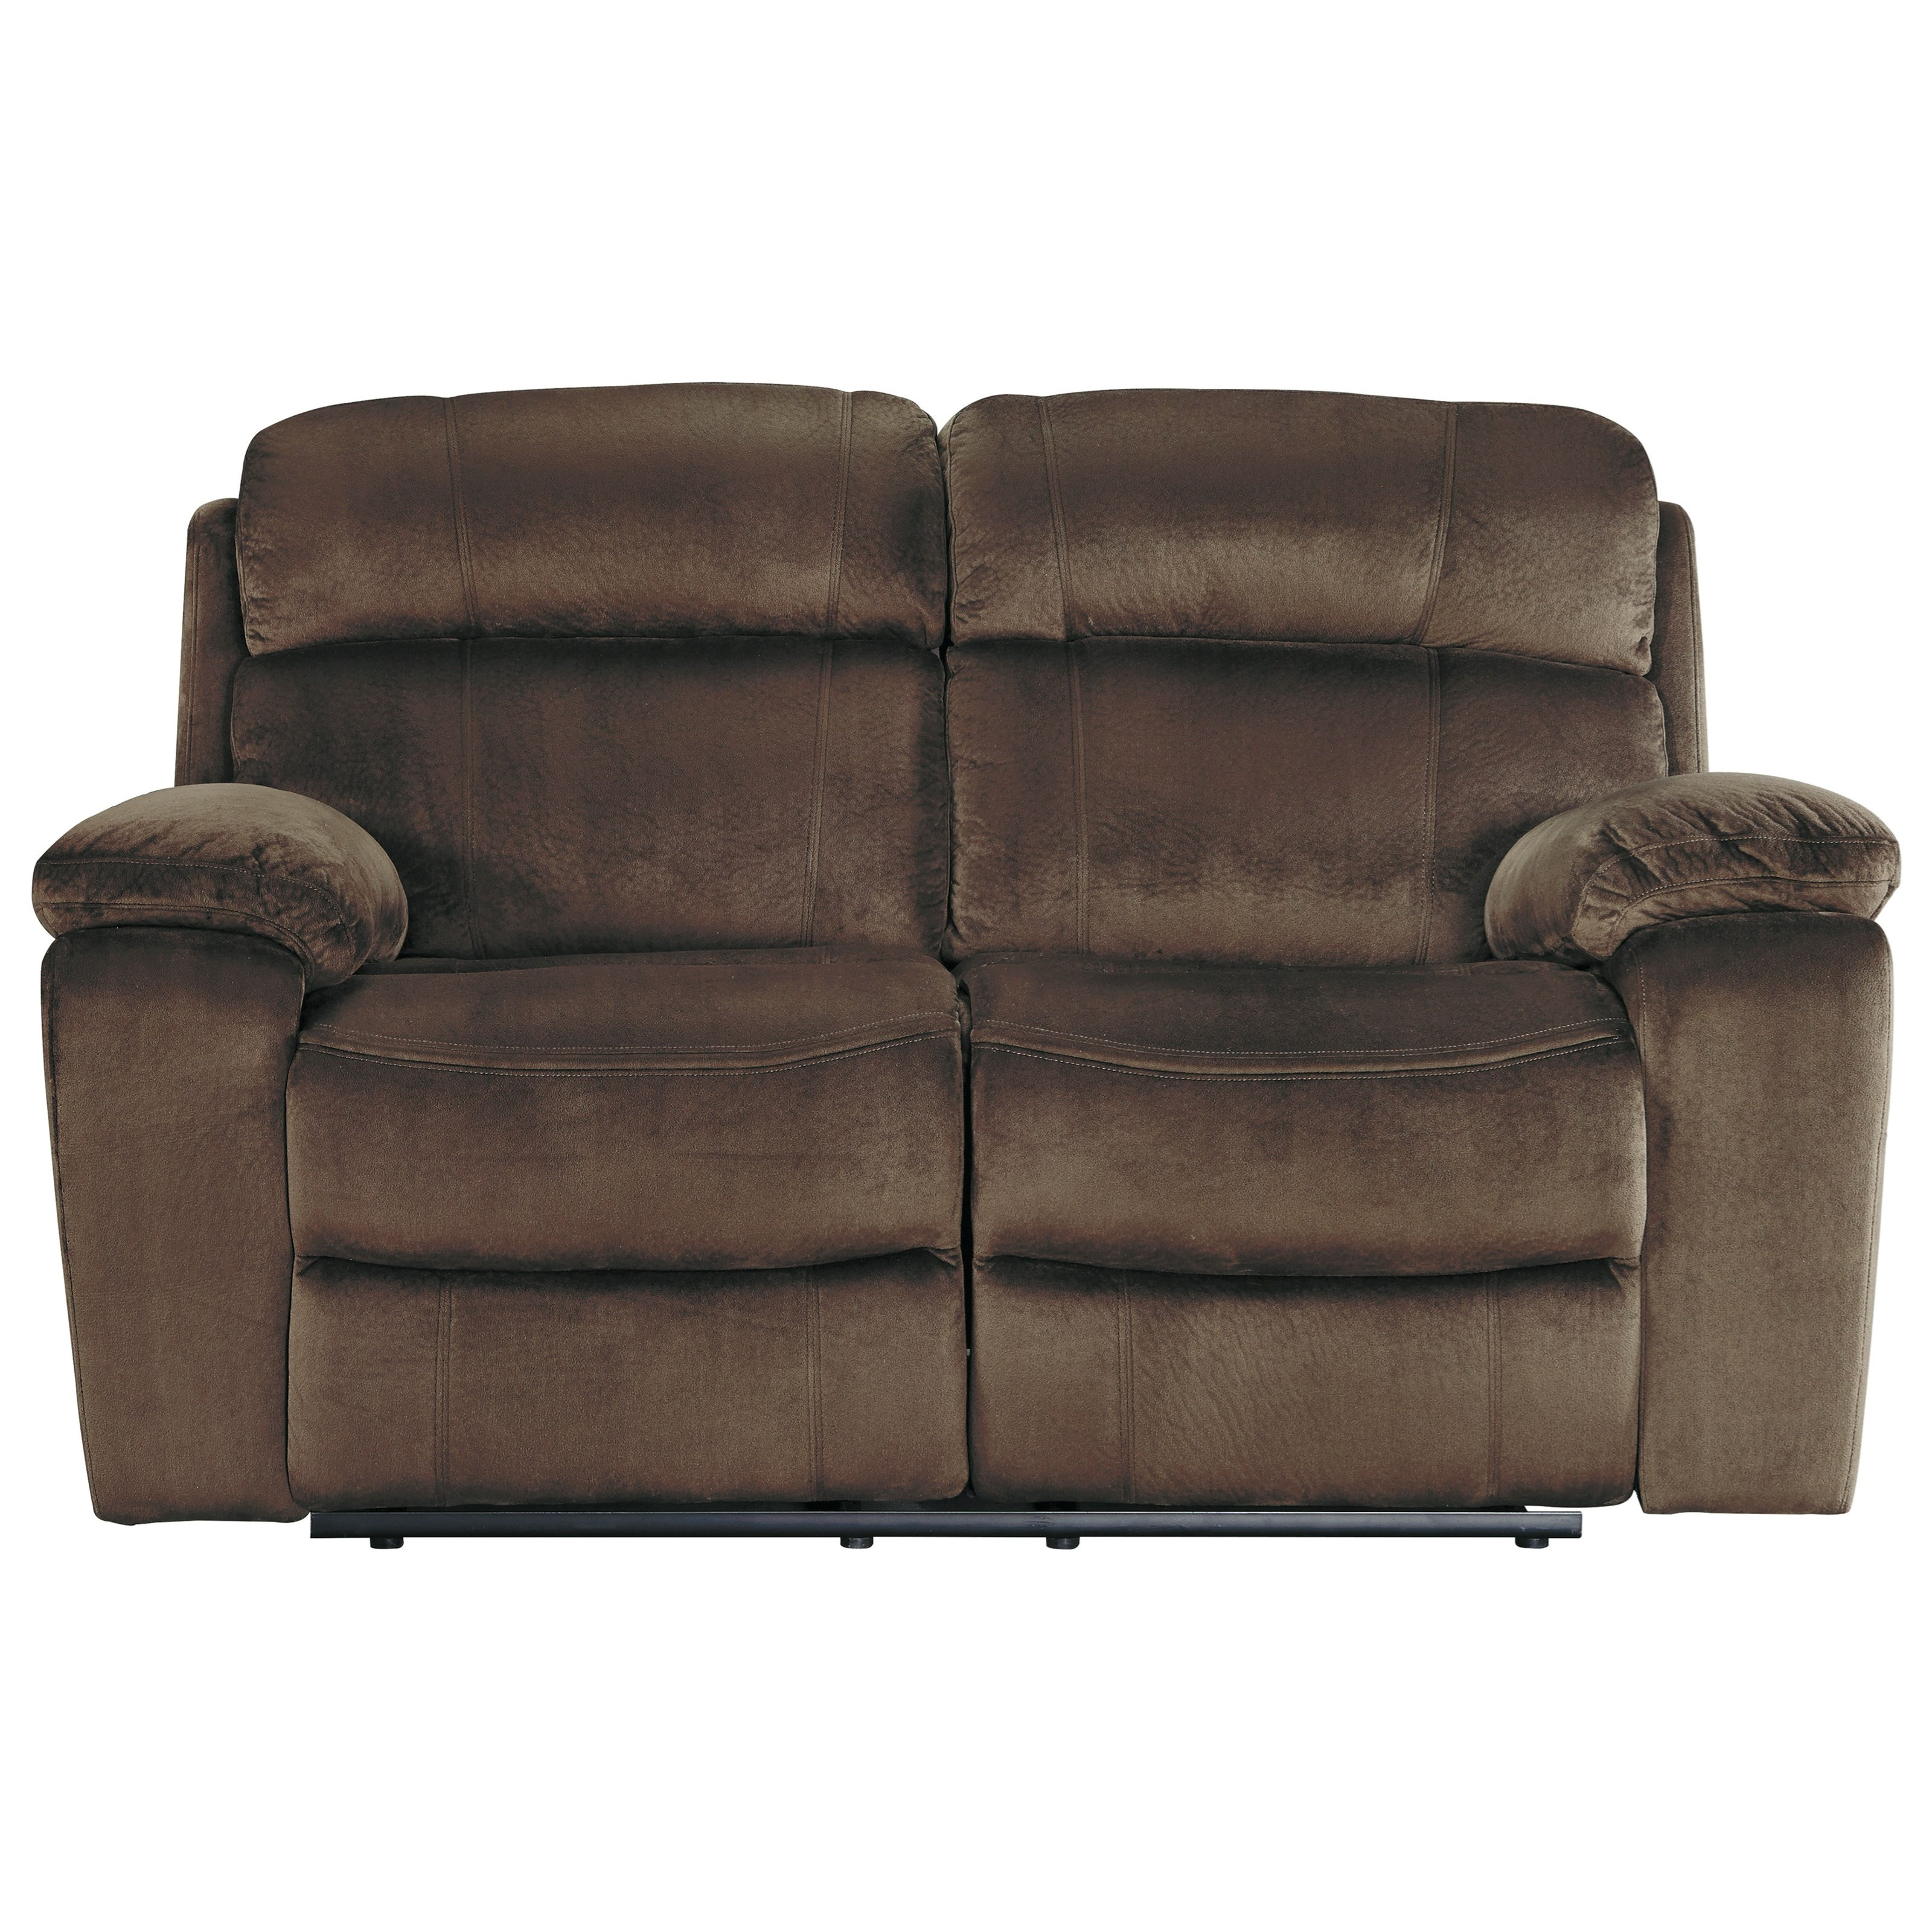 modern power reclining sofa gray leather signature design by ashley uhland 6480314 contemporary